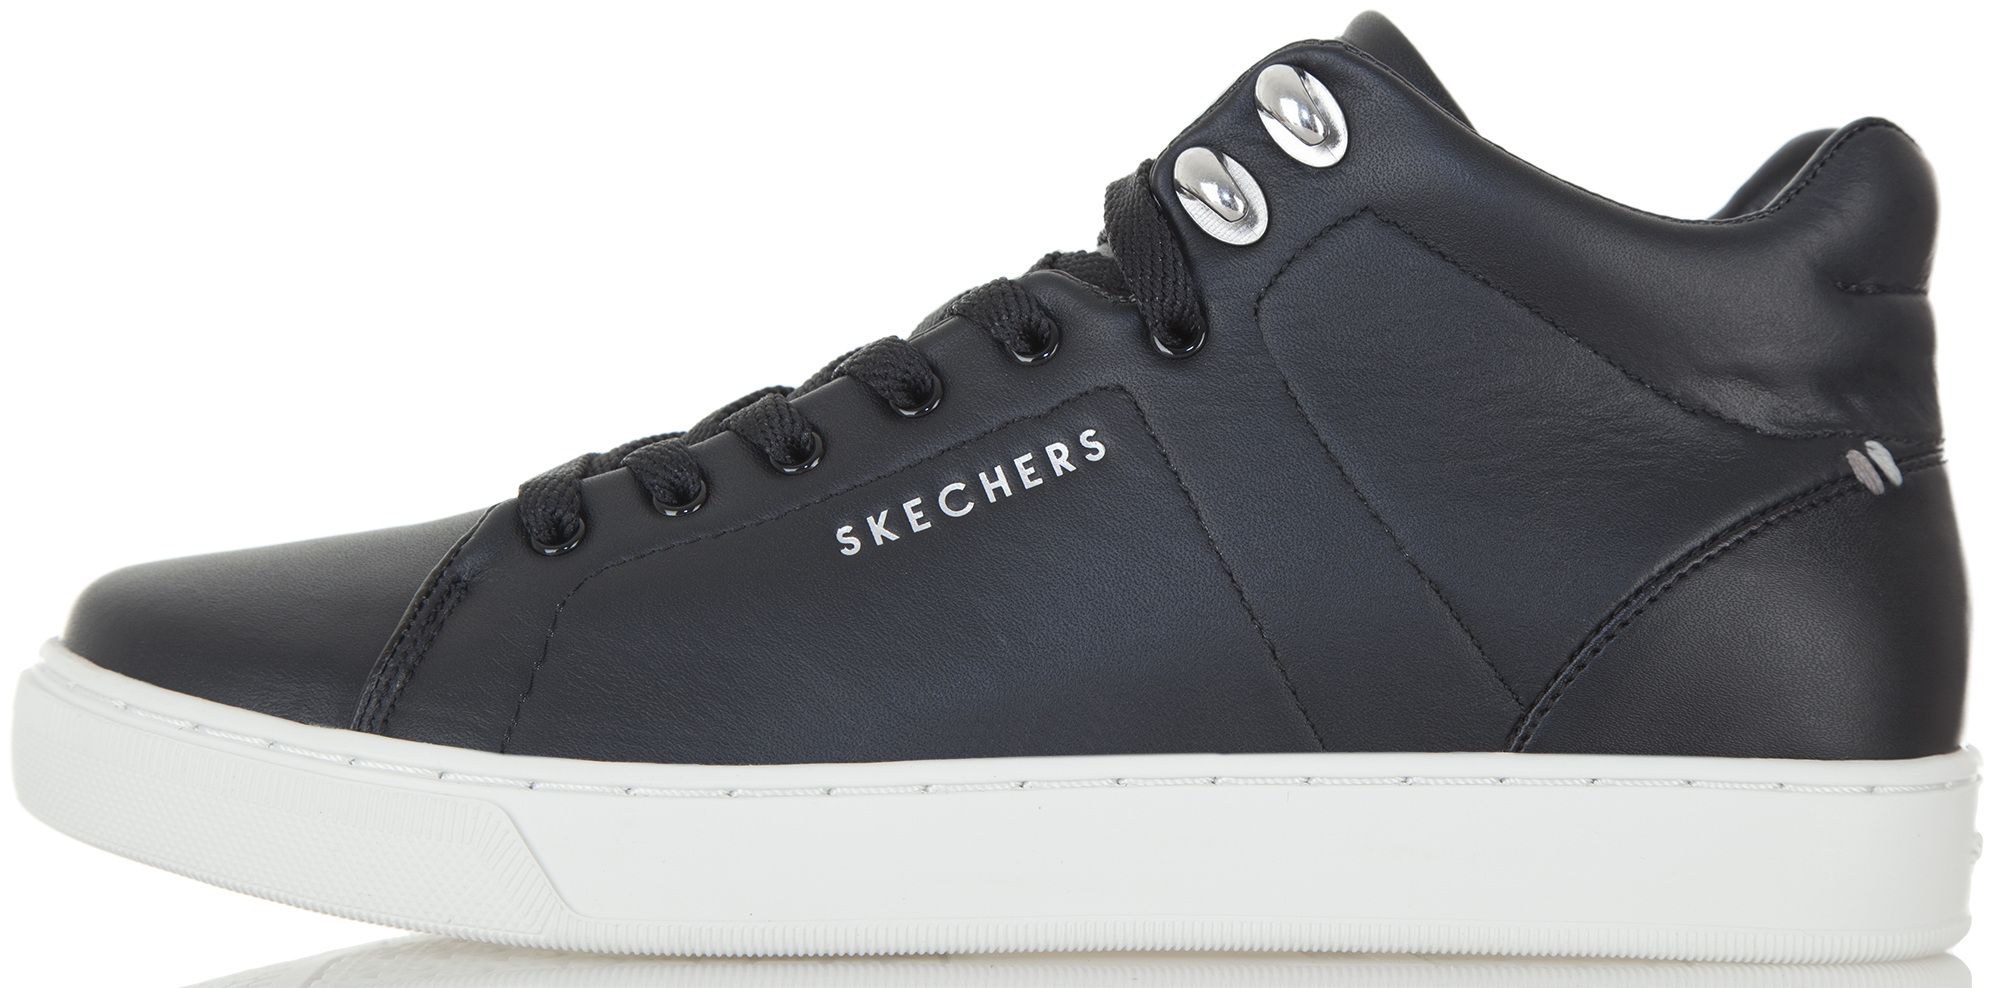 Skechers Кеды женские Prima-Leather Lacers, размер 36